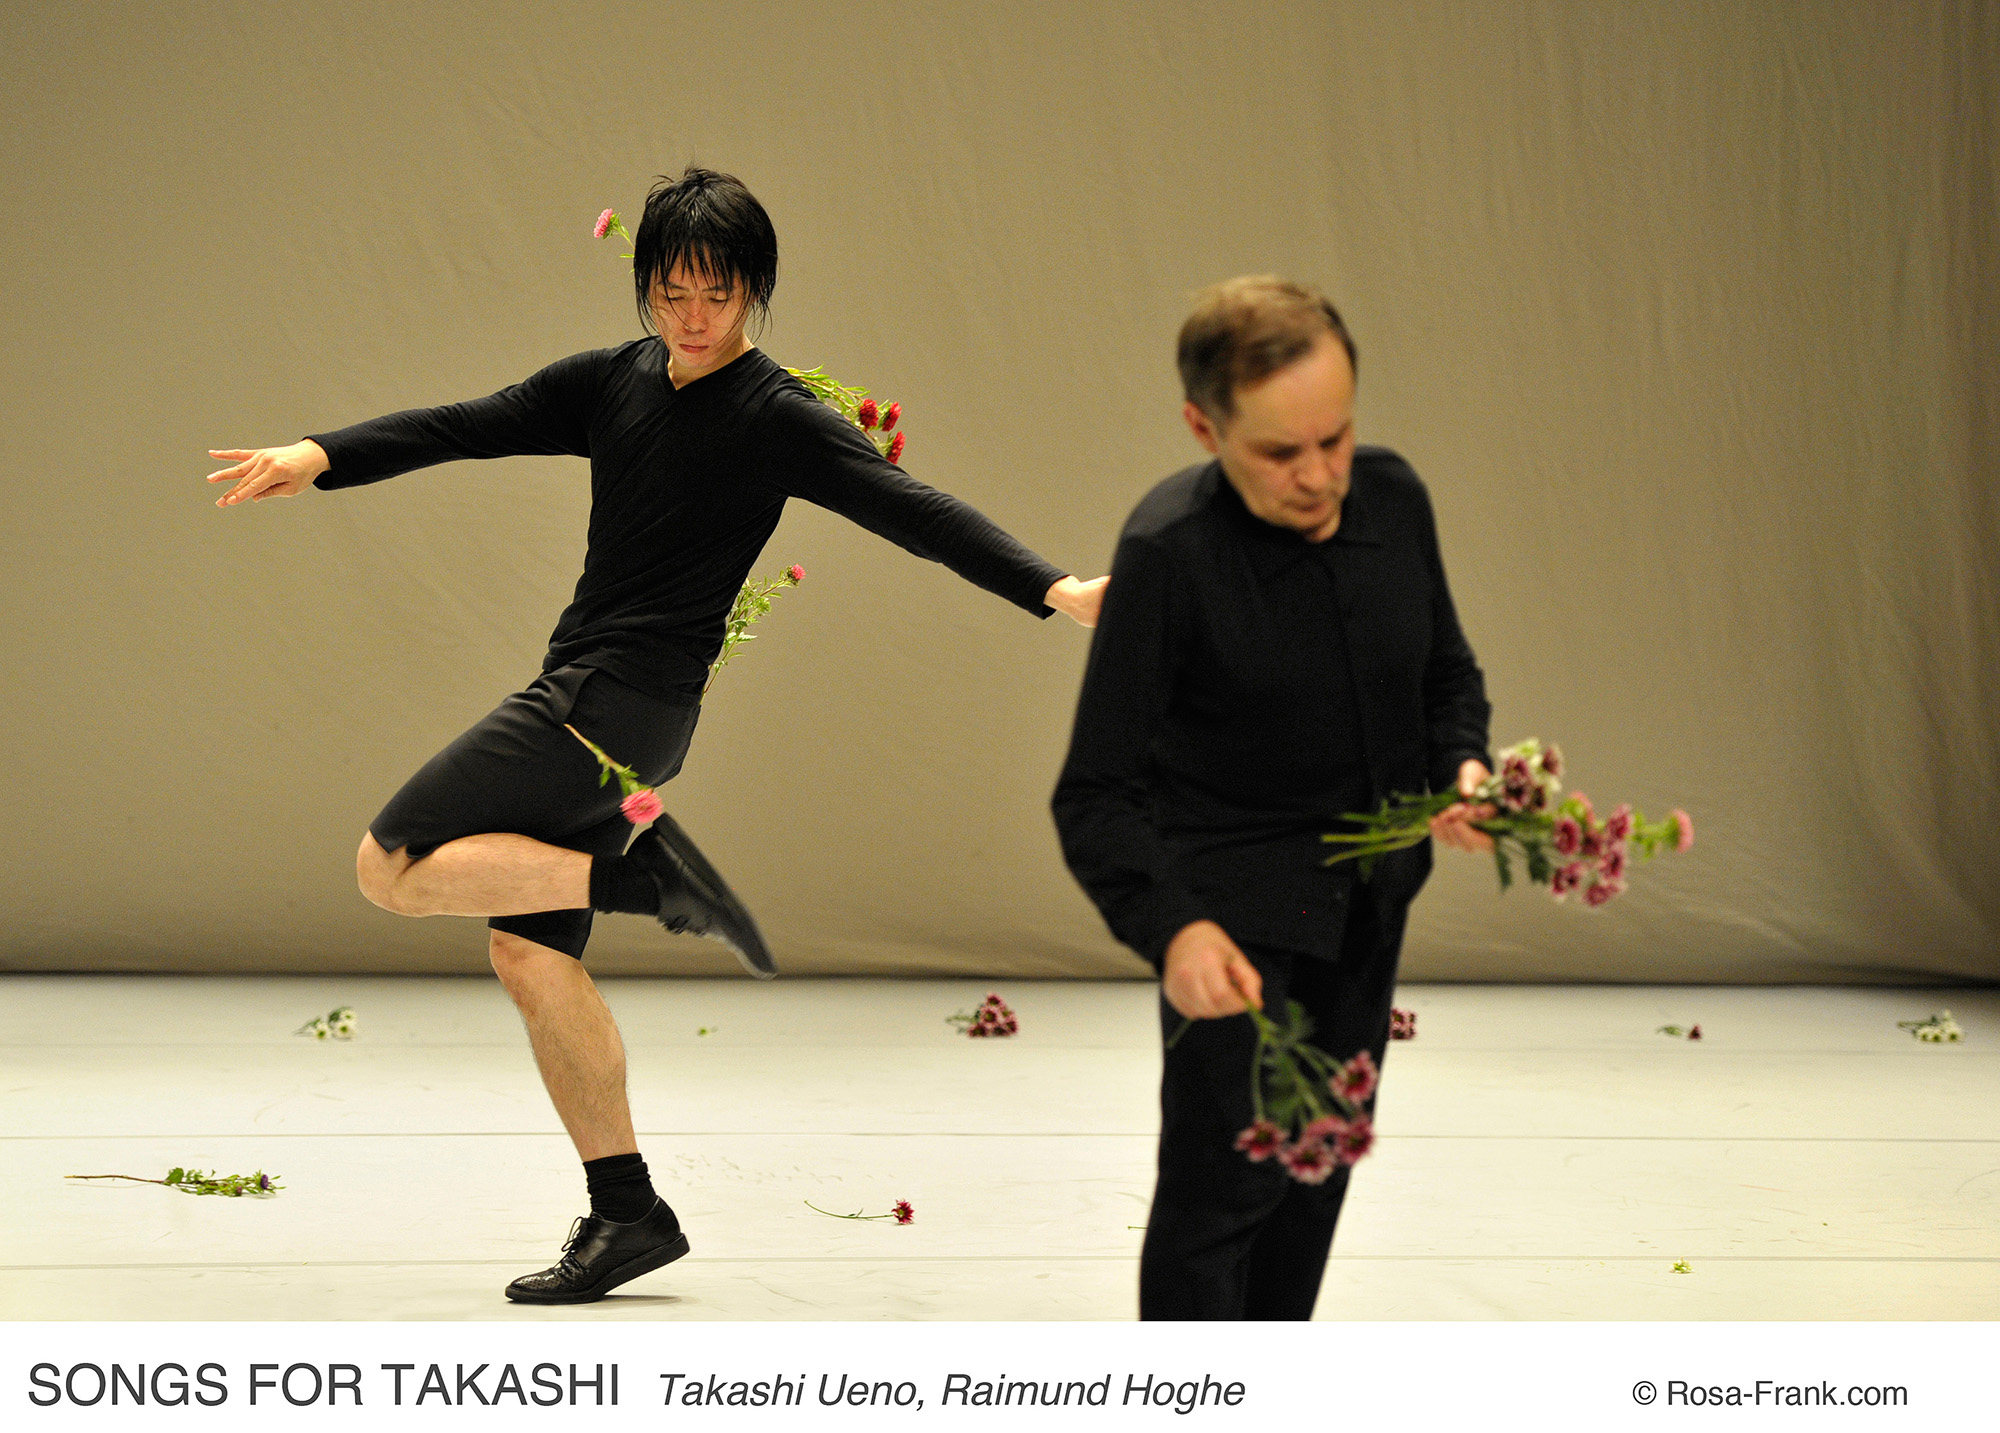 projects songs for takashi les ind eacute pendances montpellier danse reacutesidence agrave l agora cite internationale de la danse montpellier special thanks to agnegraves b paris credits copy rosa frank com